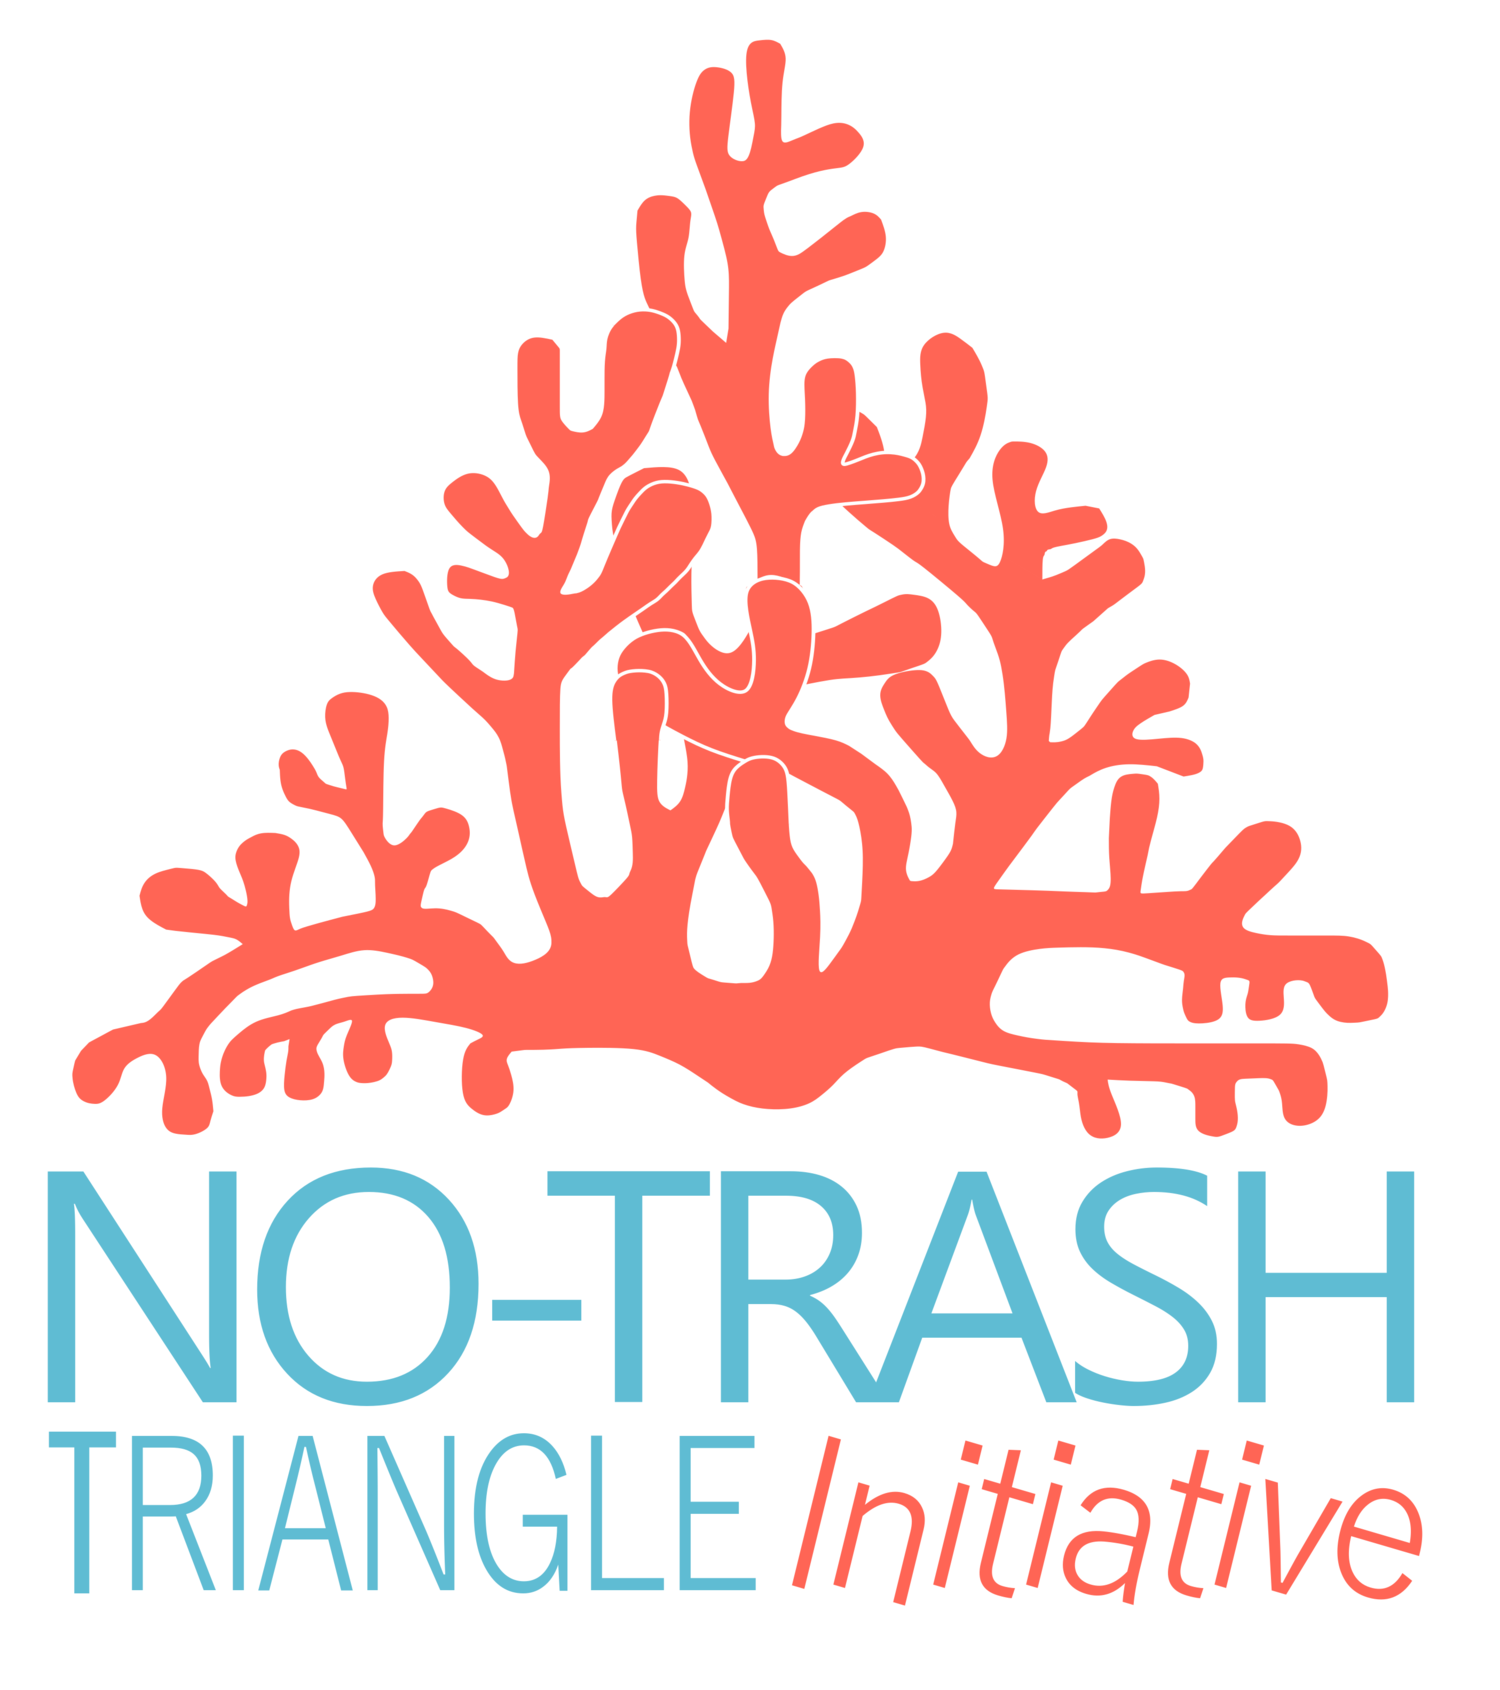 no-trash triangle